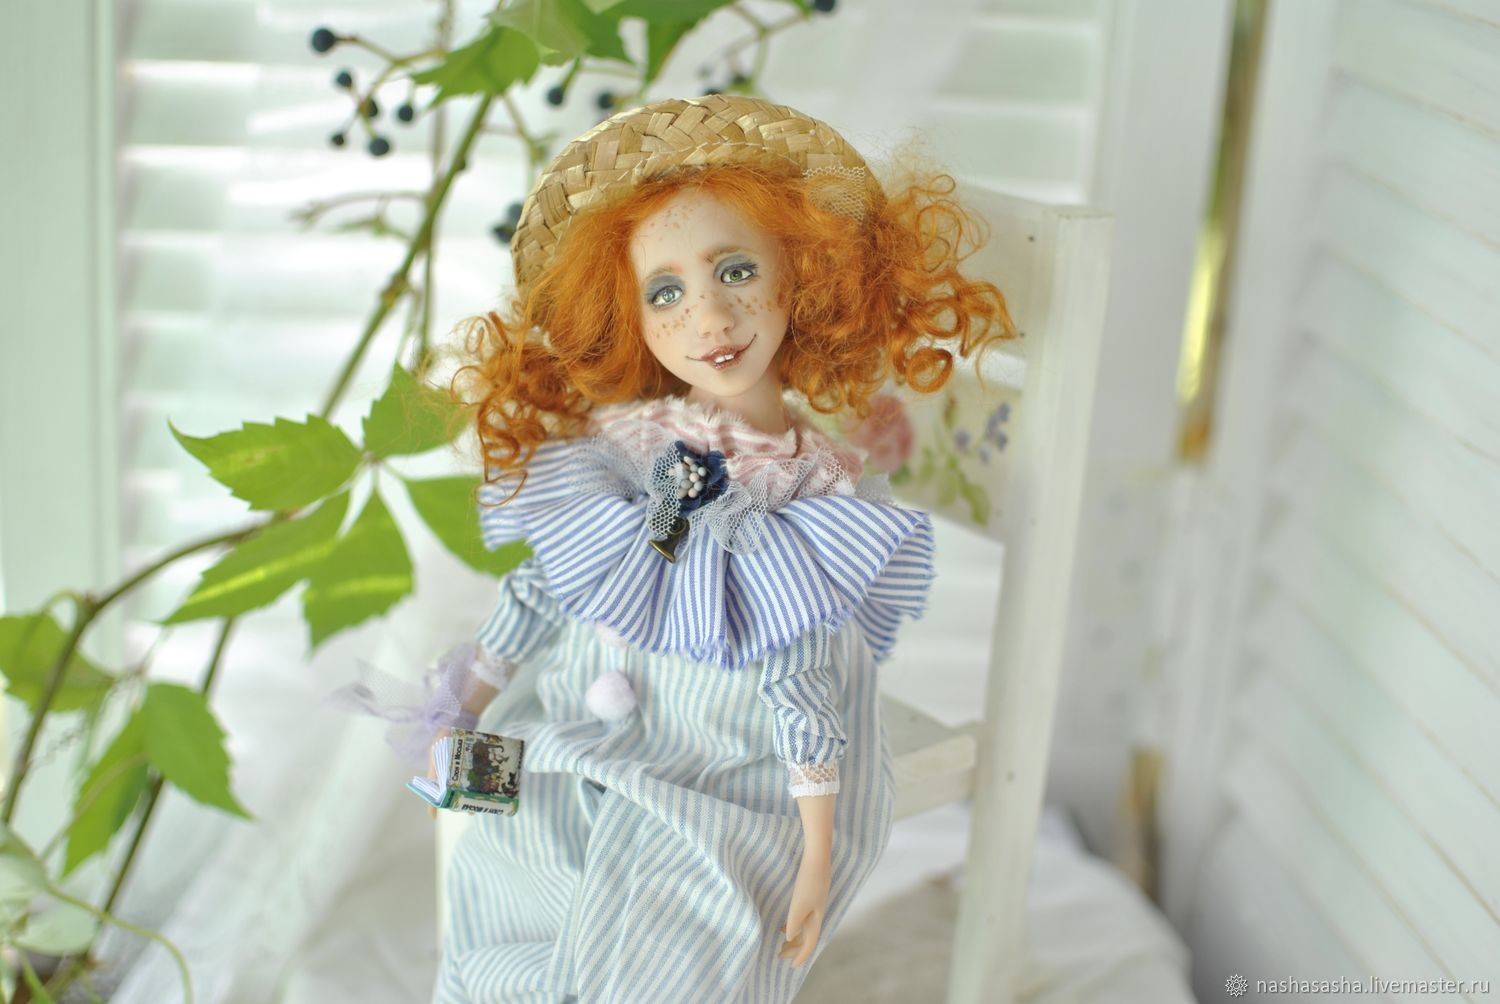 Lauren.' At noon with a book', Boudoir doll, Moscow,  Фото №1